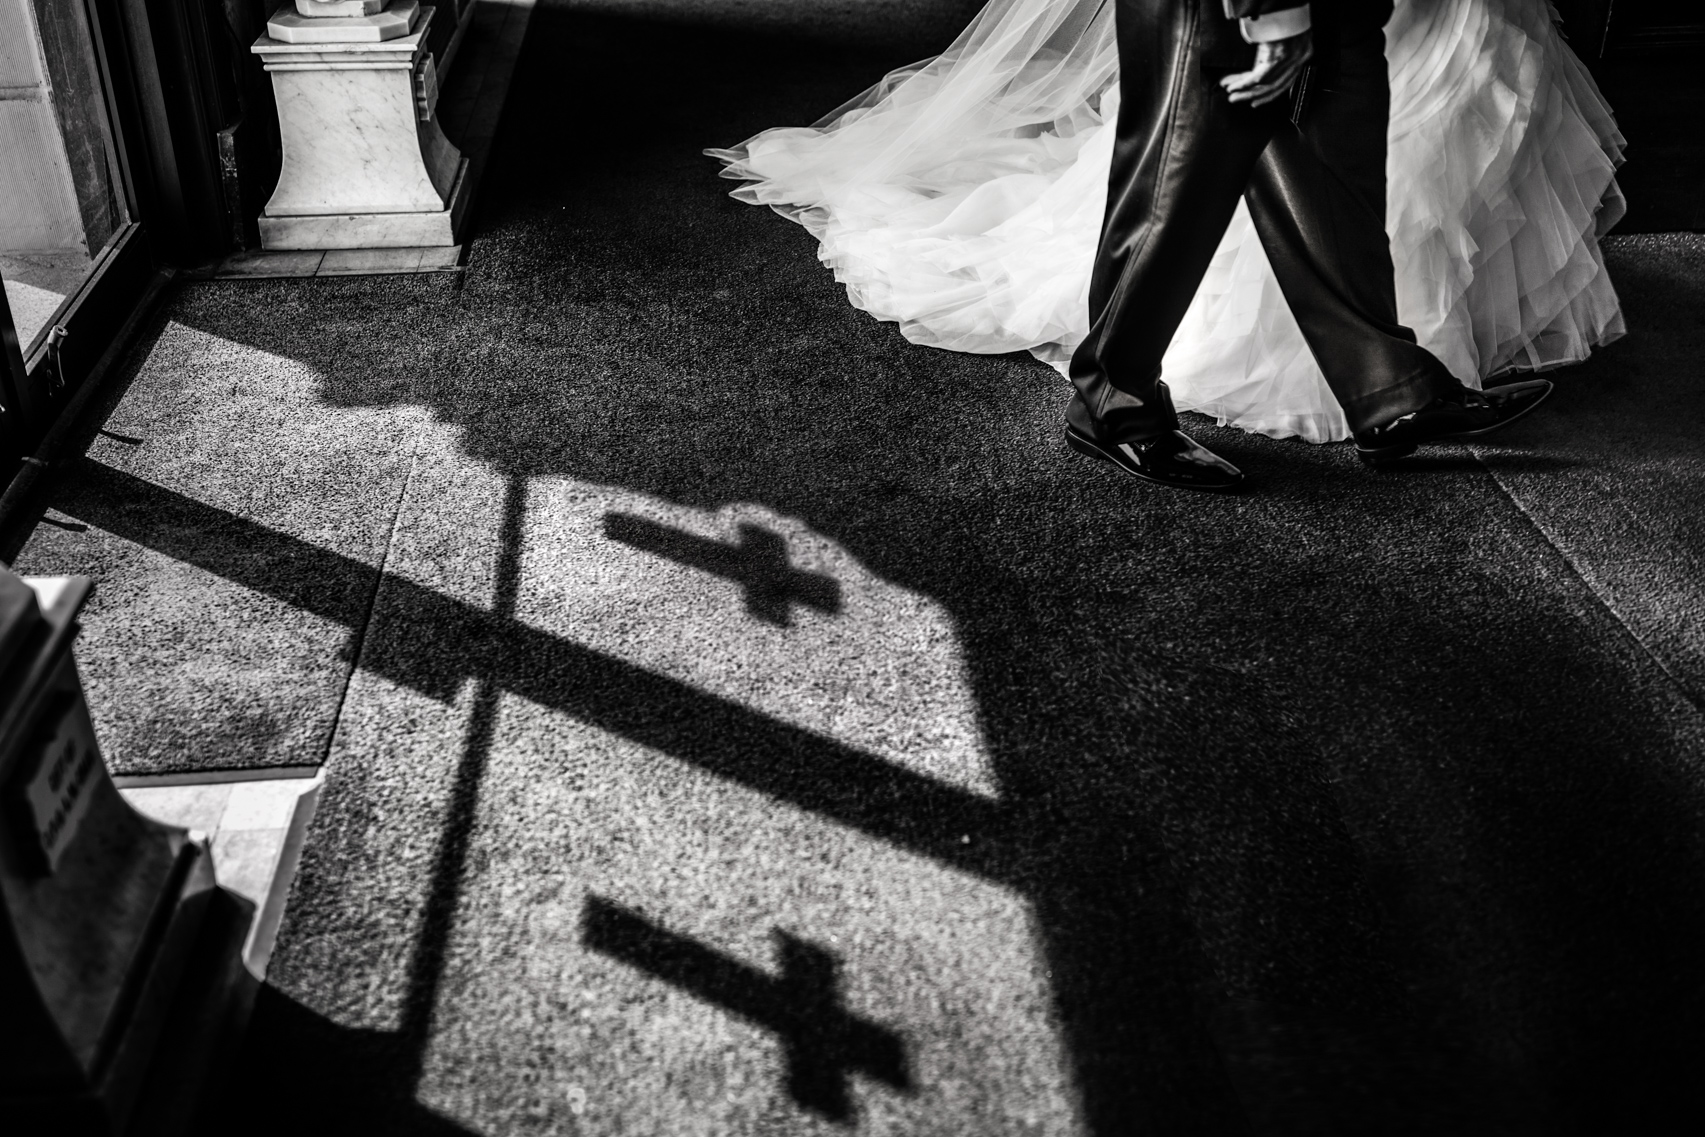 Bride entering church holding her father's hand with shadows of crosses on the ground